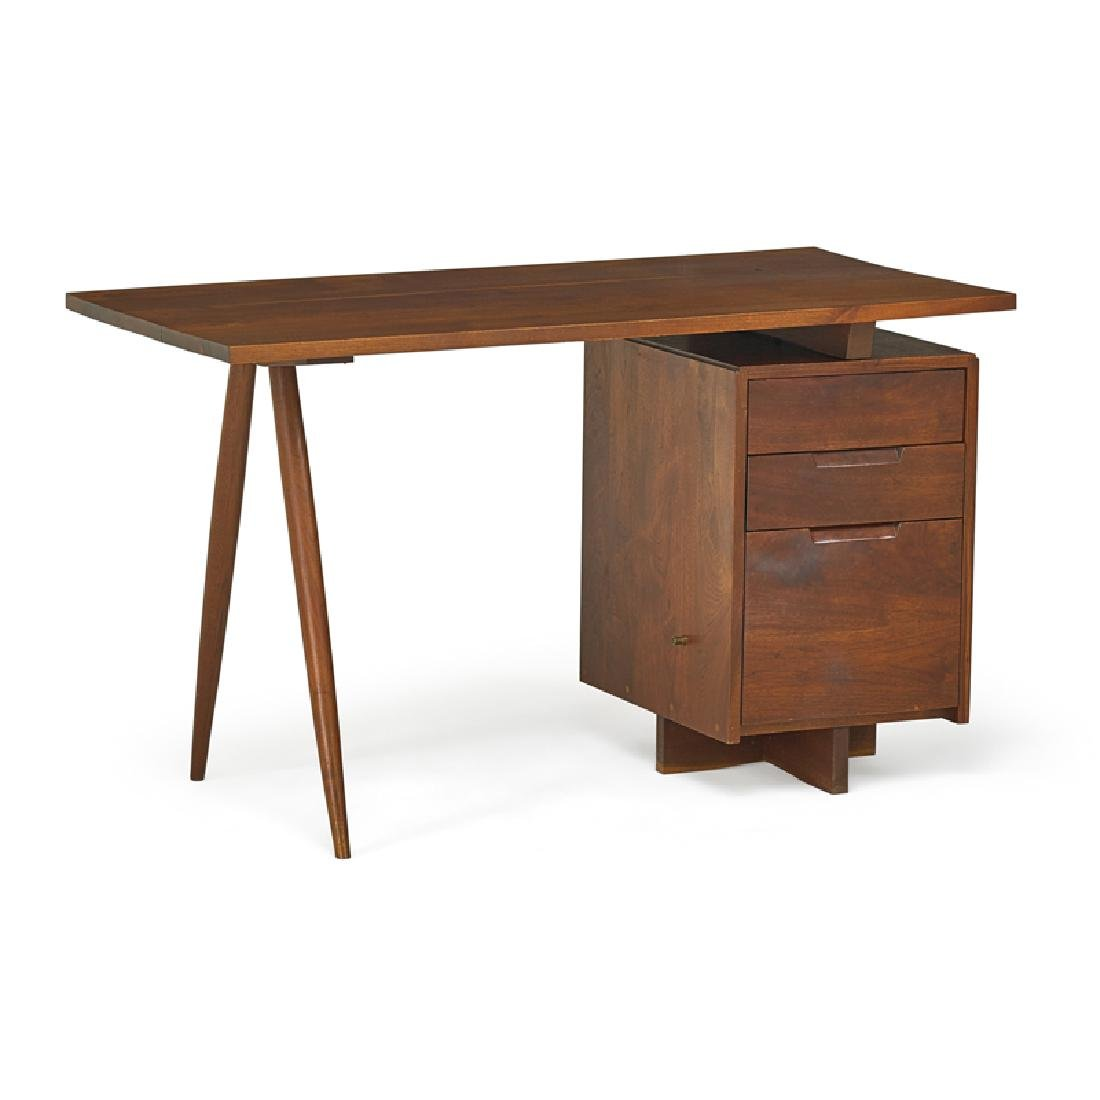 GEORGE NAKASHIMA Early Single Pedestal Desk